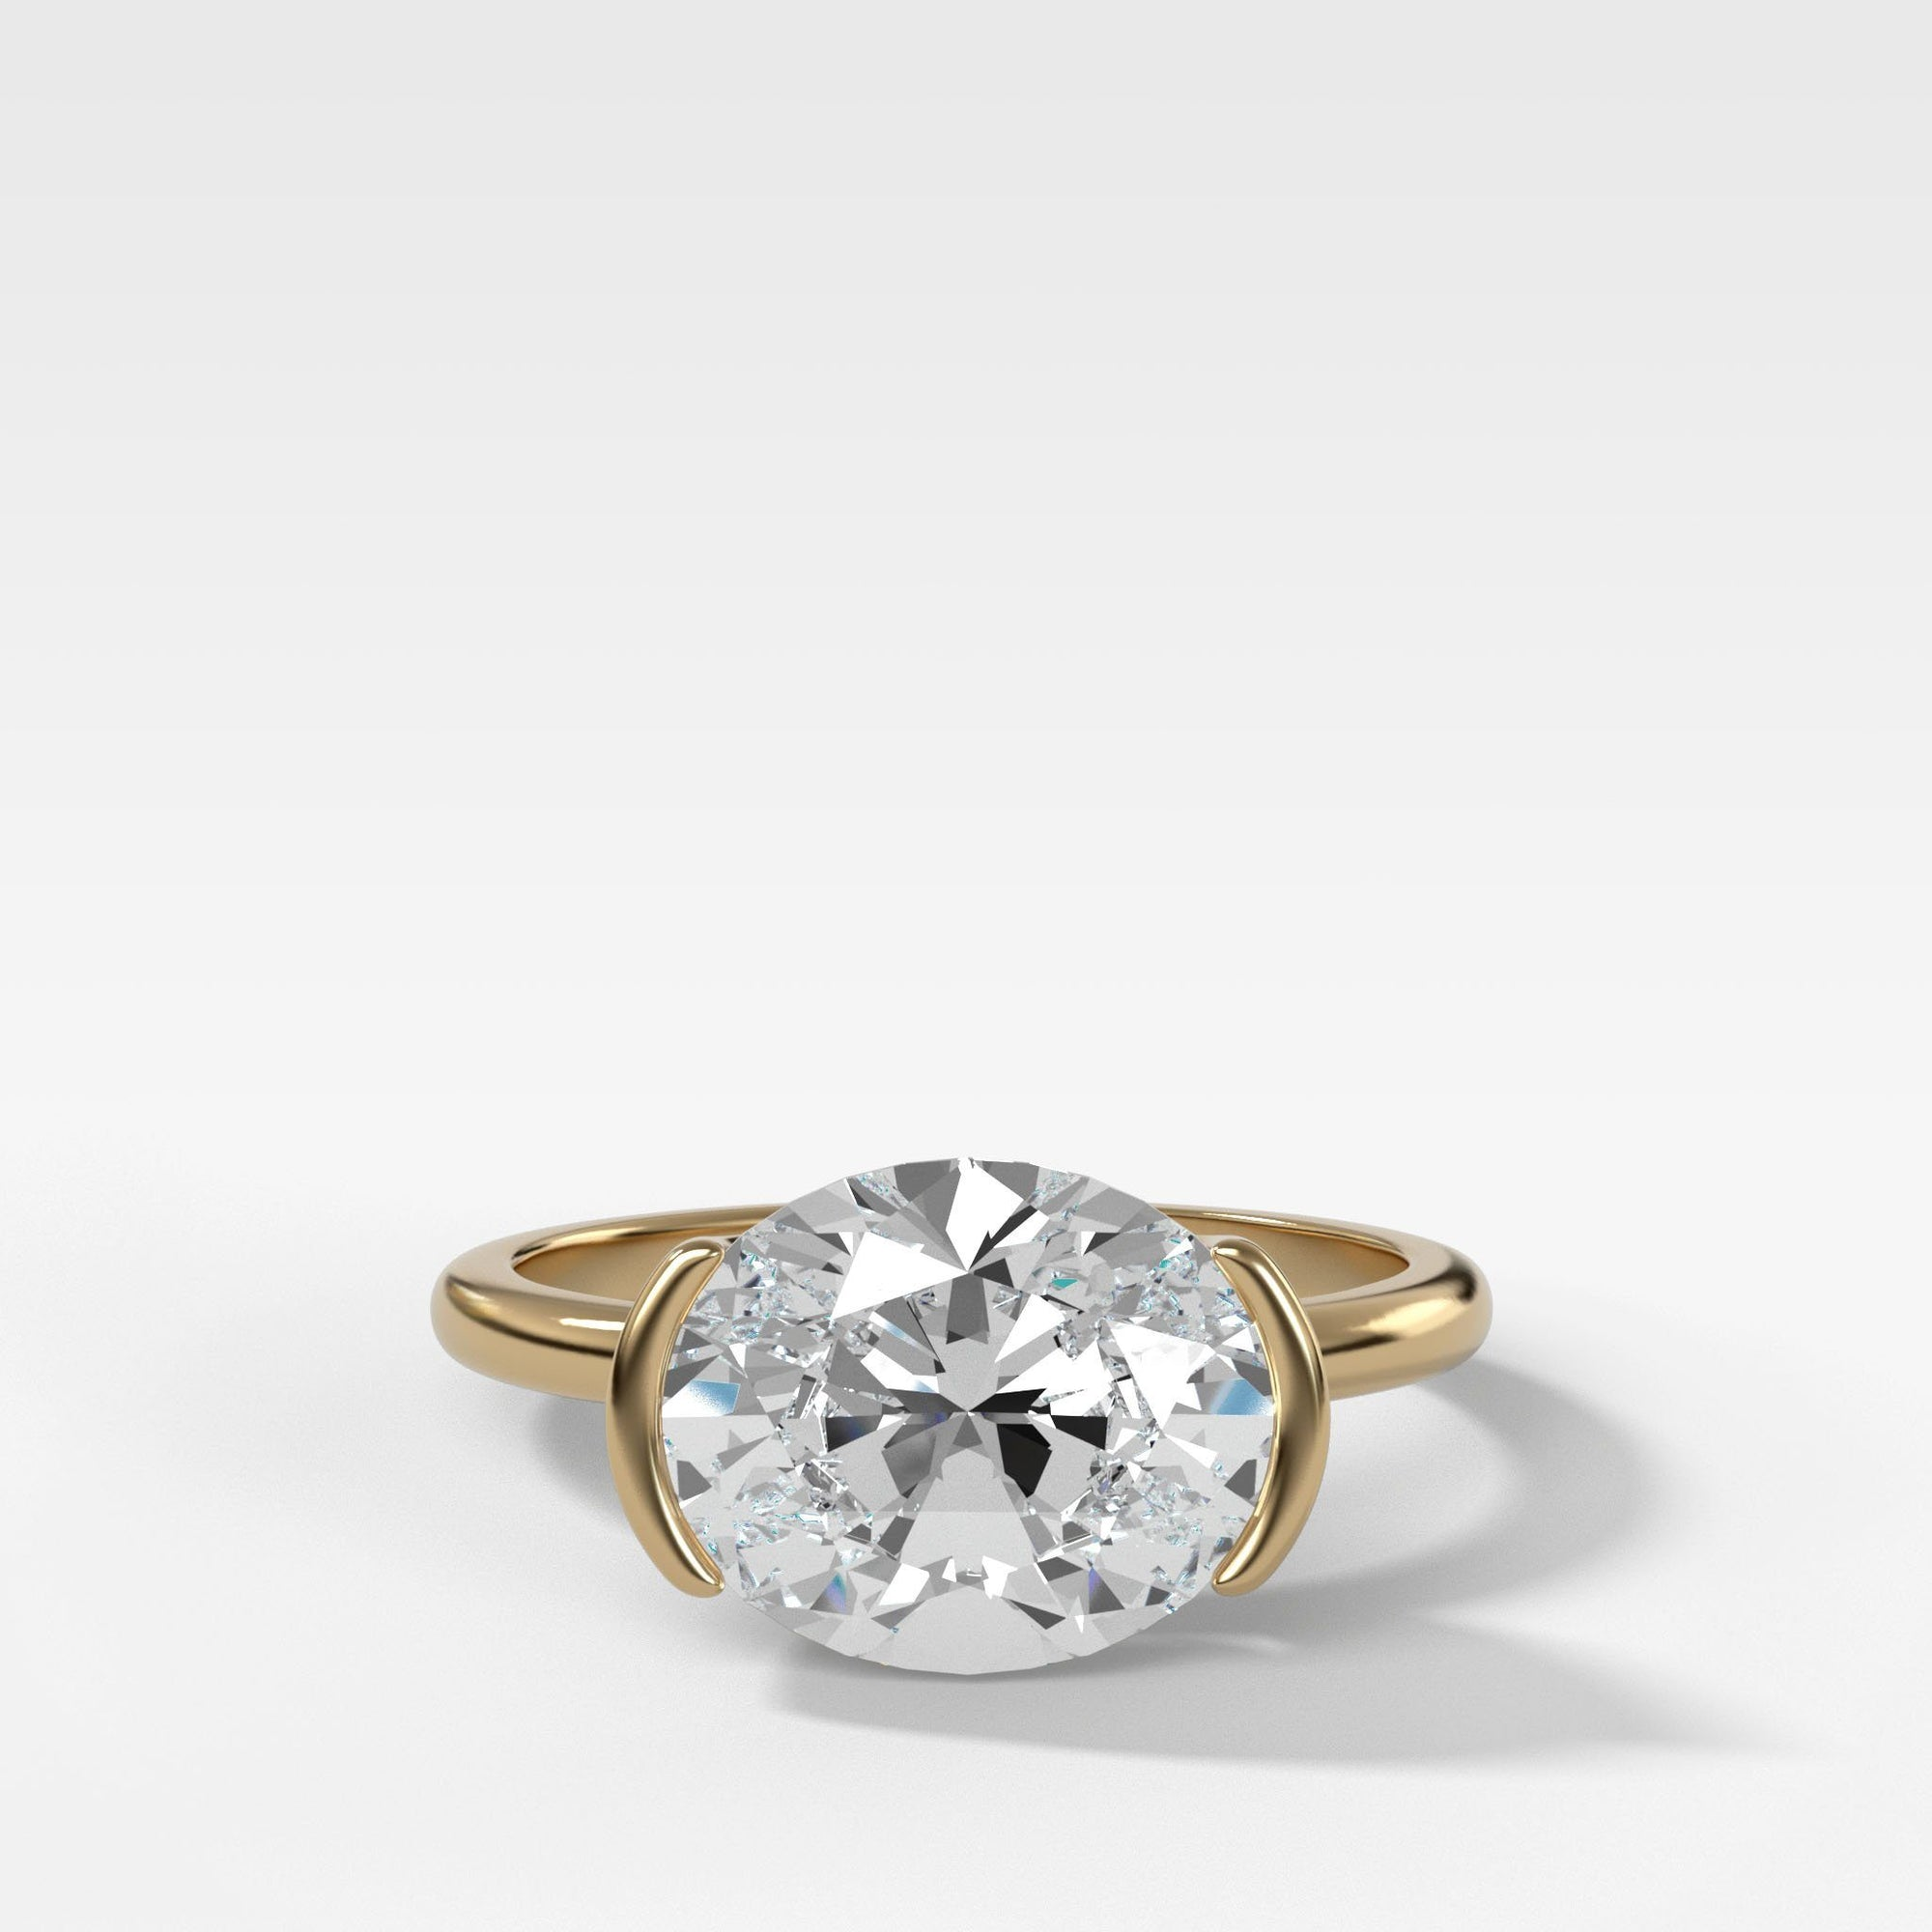 East West Half Bezel Solitaire Engagement Ring With Oval Cut Engagement Good Stone Inc Yellow Gold 14k